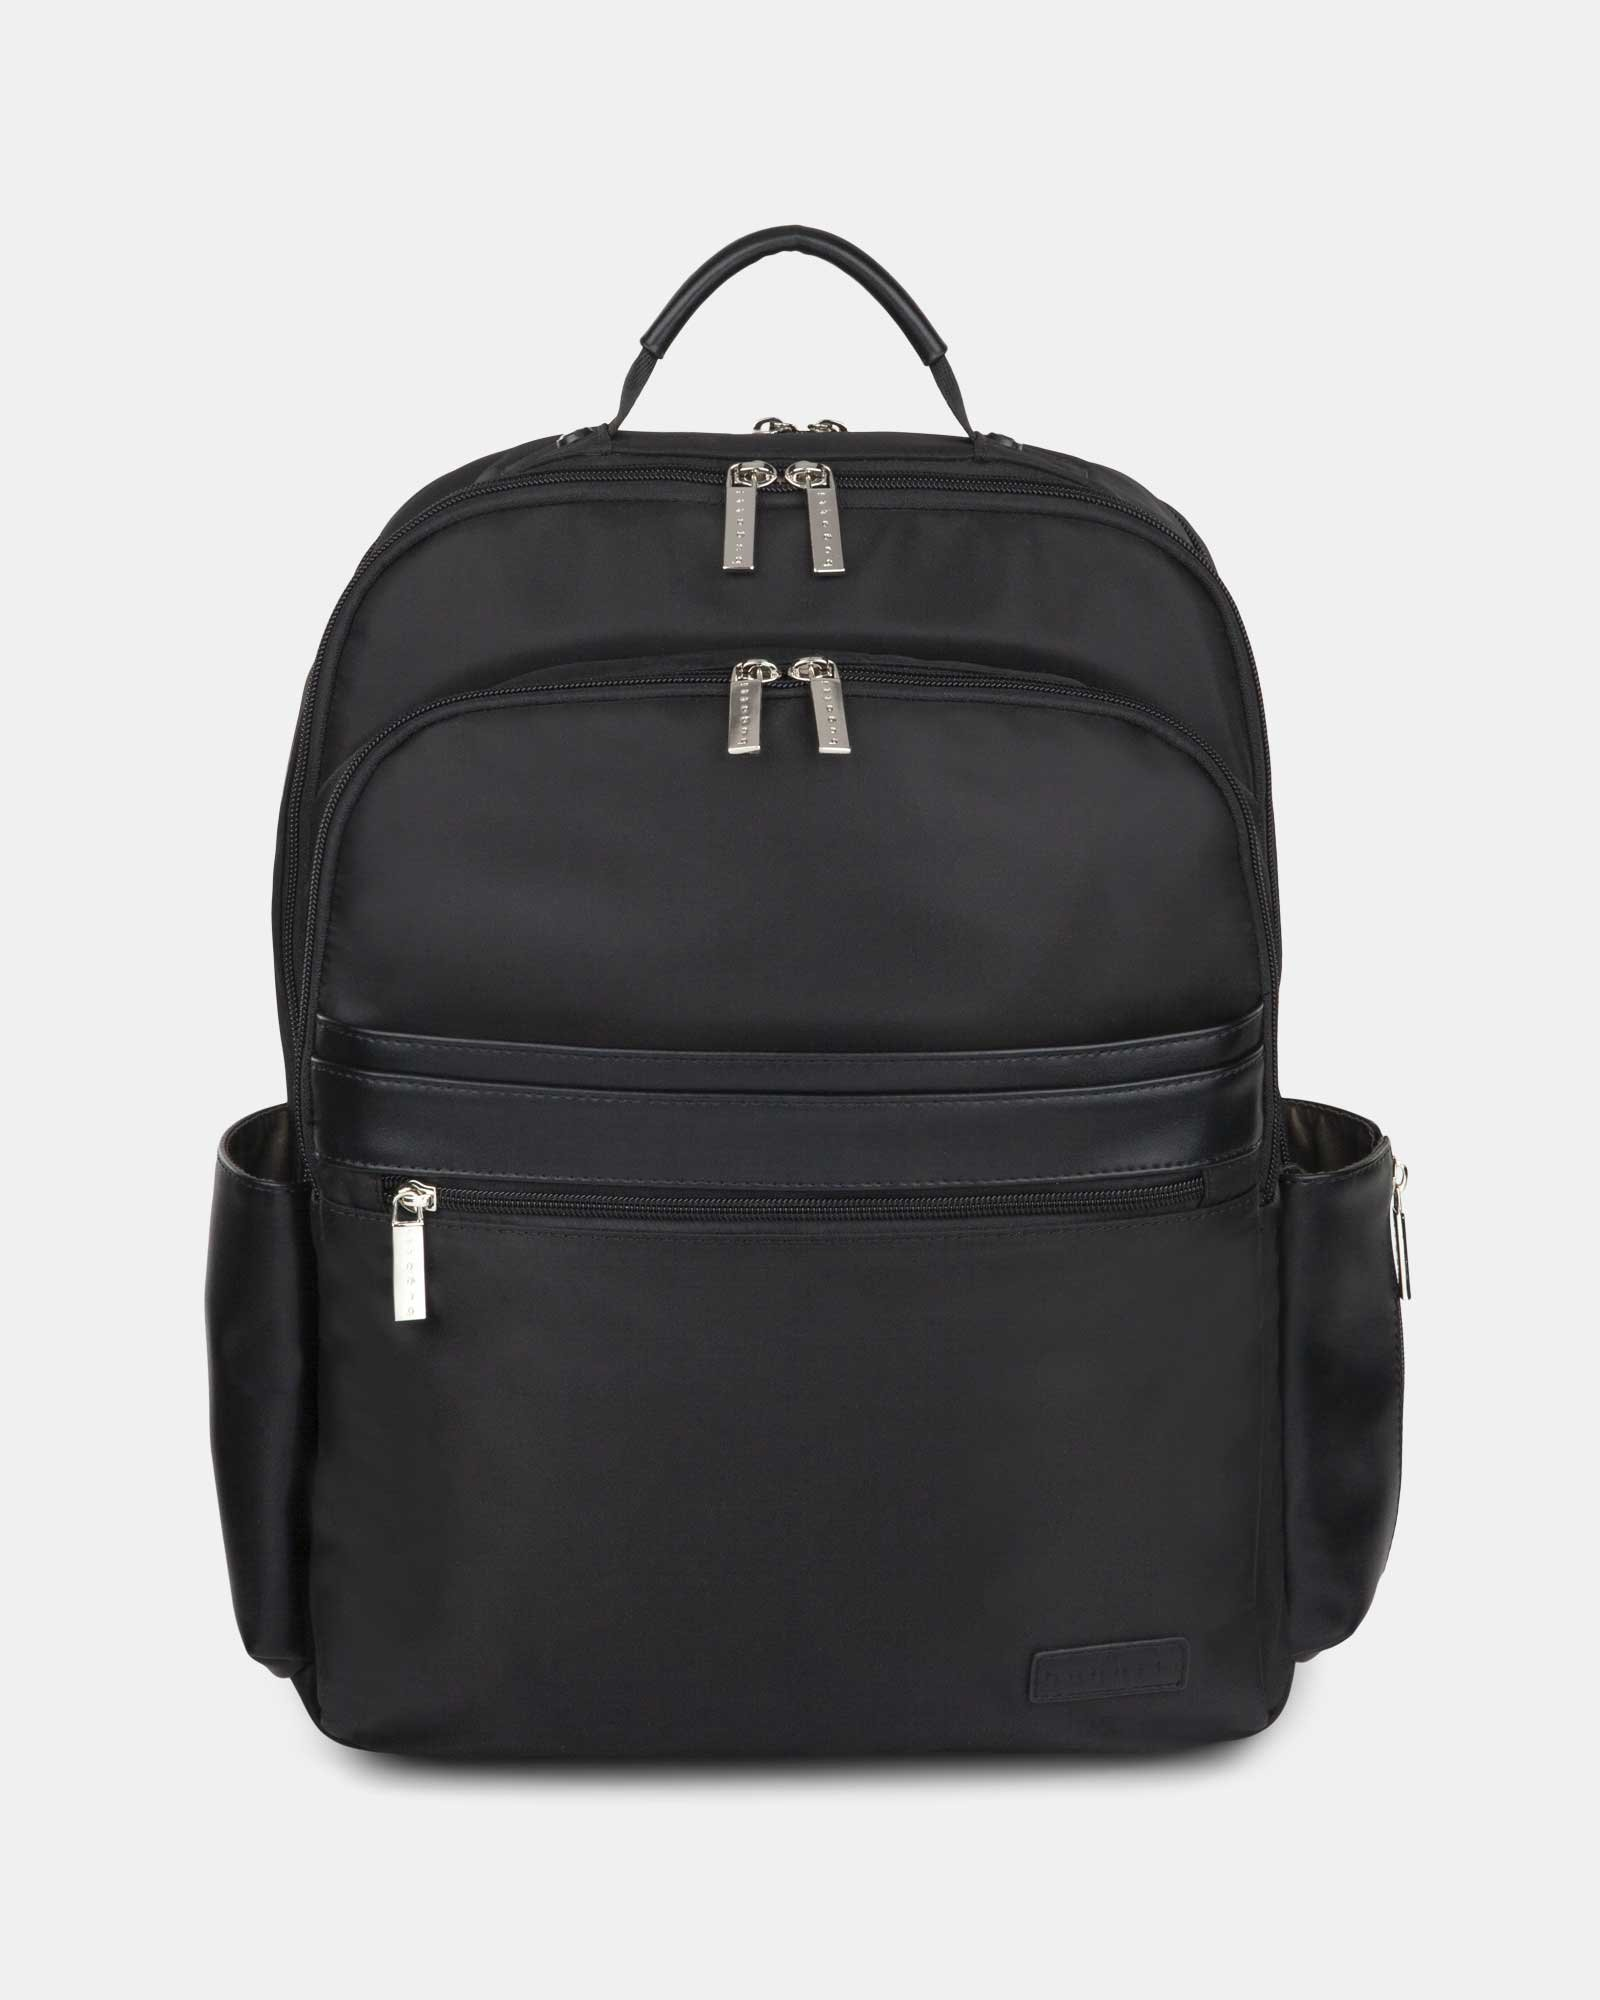 """Moretti - Backpack with Padded laptop compartment for 15.6"""" + RFID protection - Black  - Bugatti - Zoom"""